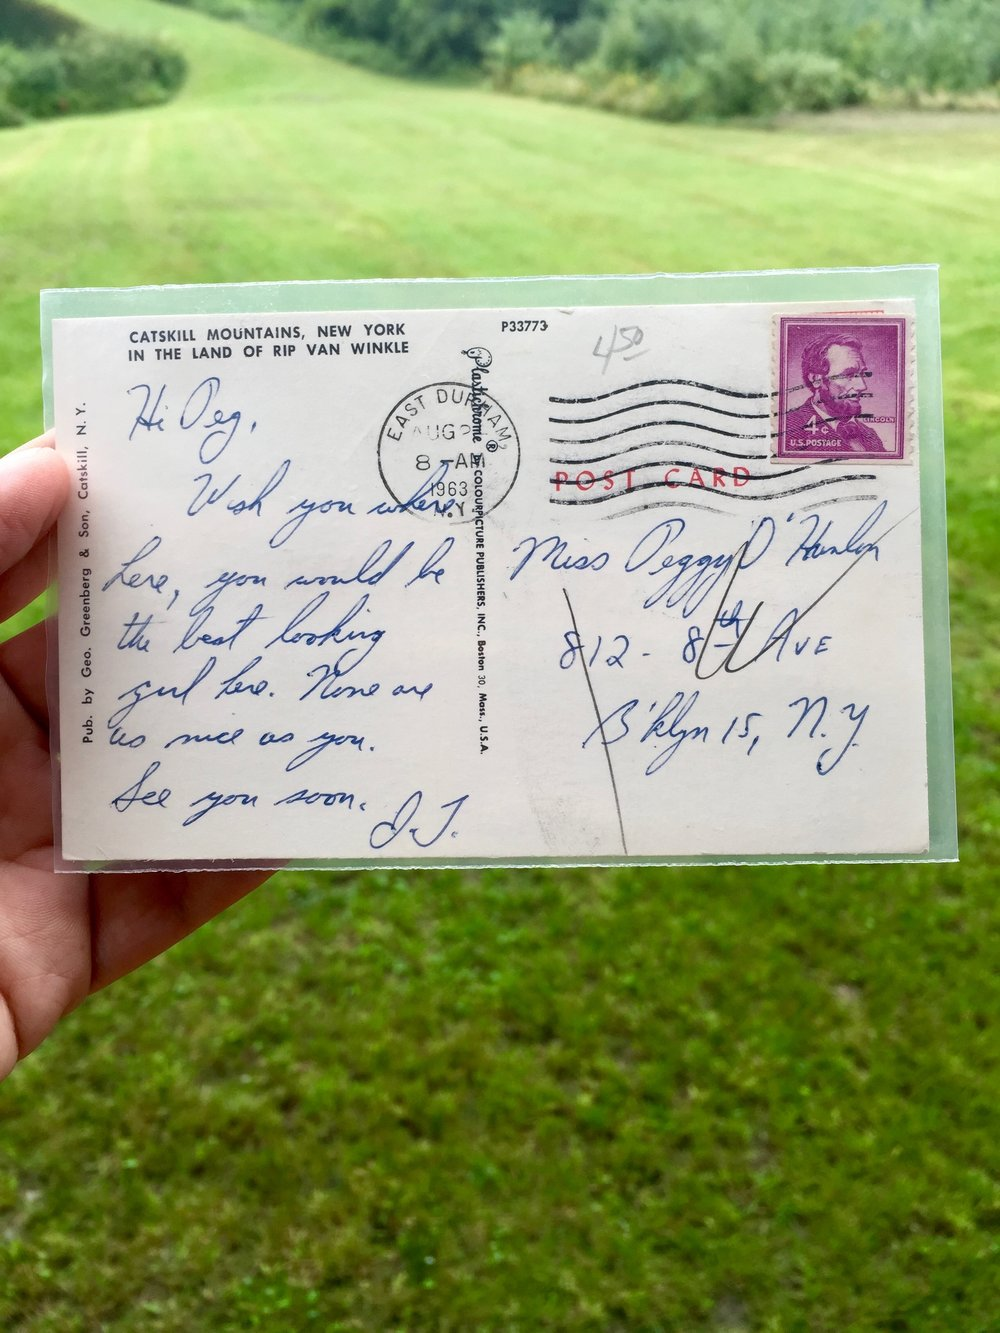 A postcard to Peggy O'Hanlon